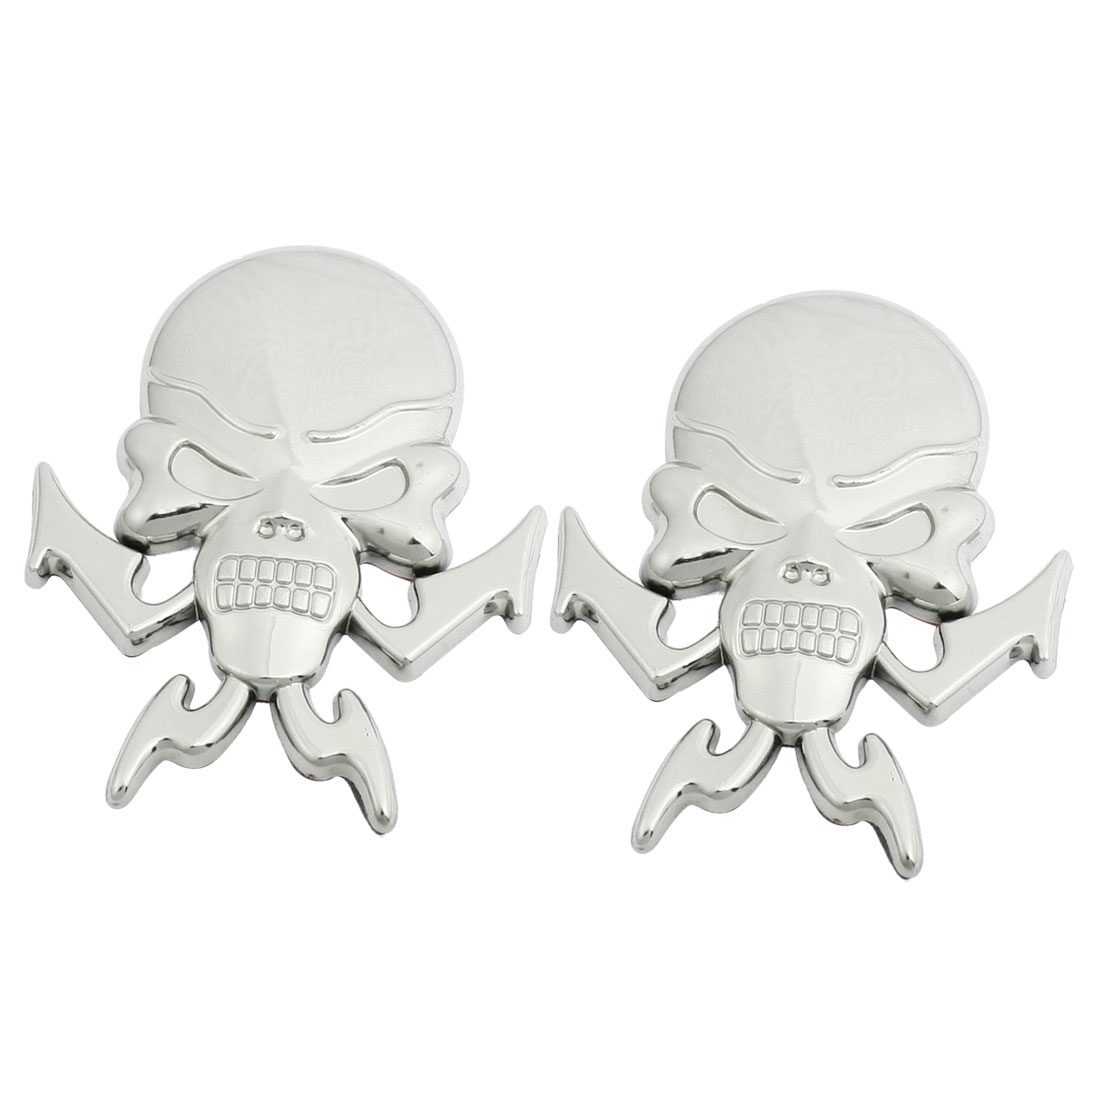 2 Pcs Silver Tone 3D Plastic Skull Car Hood Bonnet Ornament Emblem Sticker